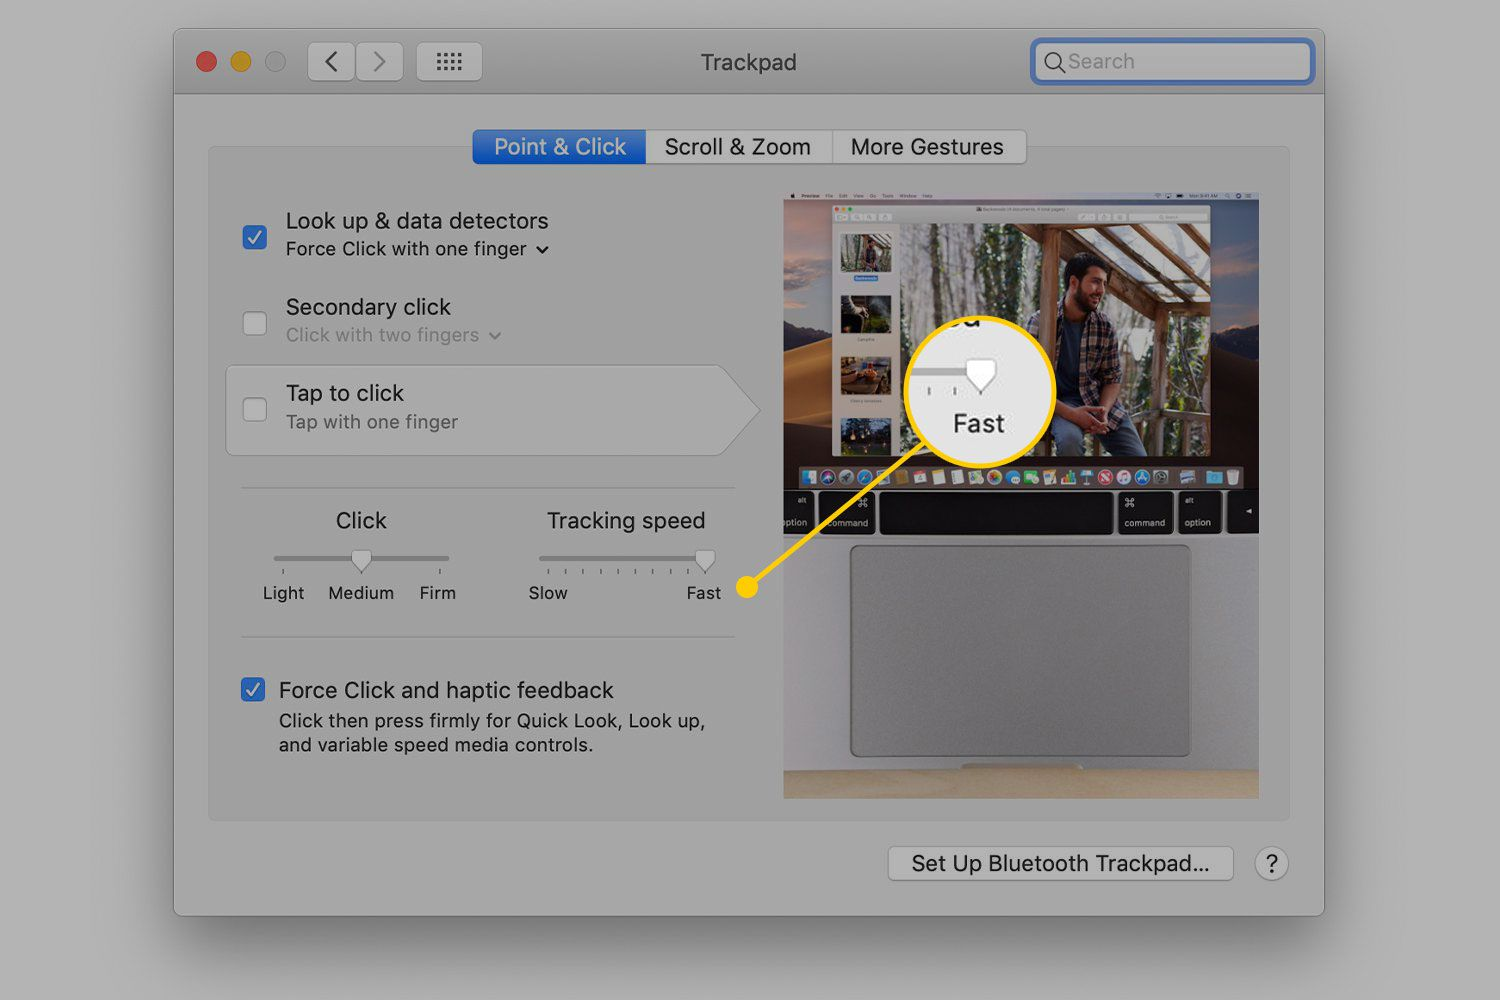 Tracking speed in Trackpad settings on Mac